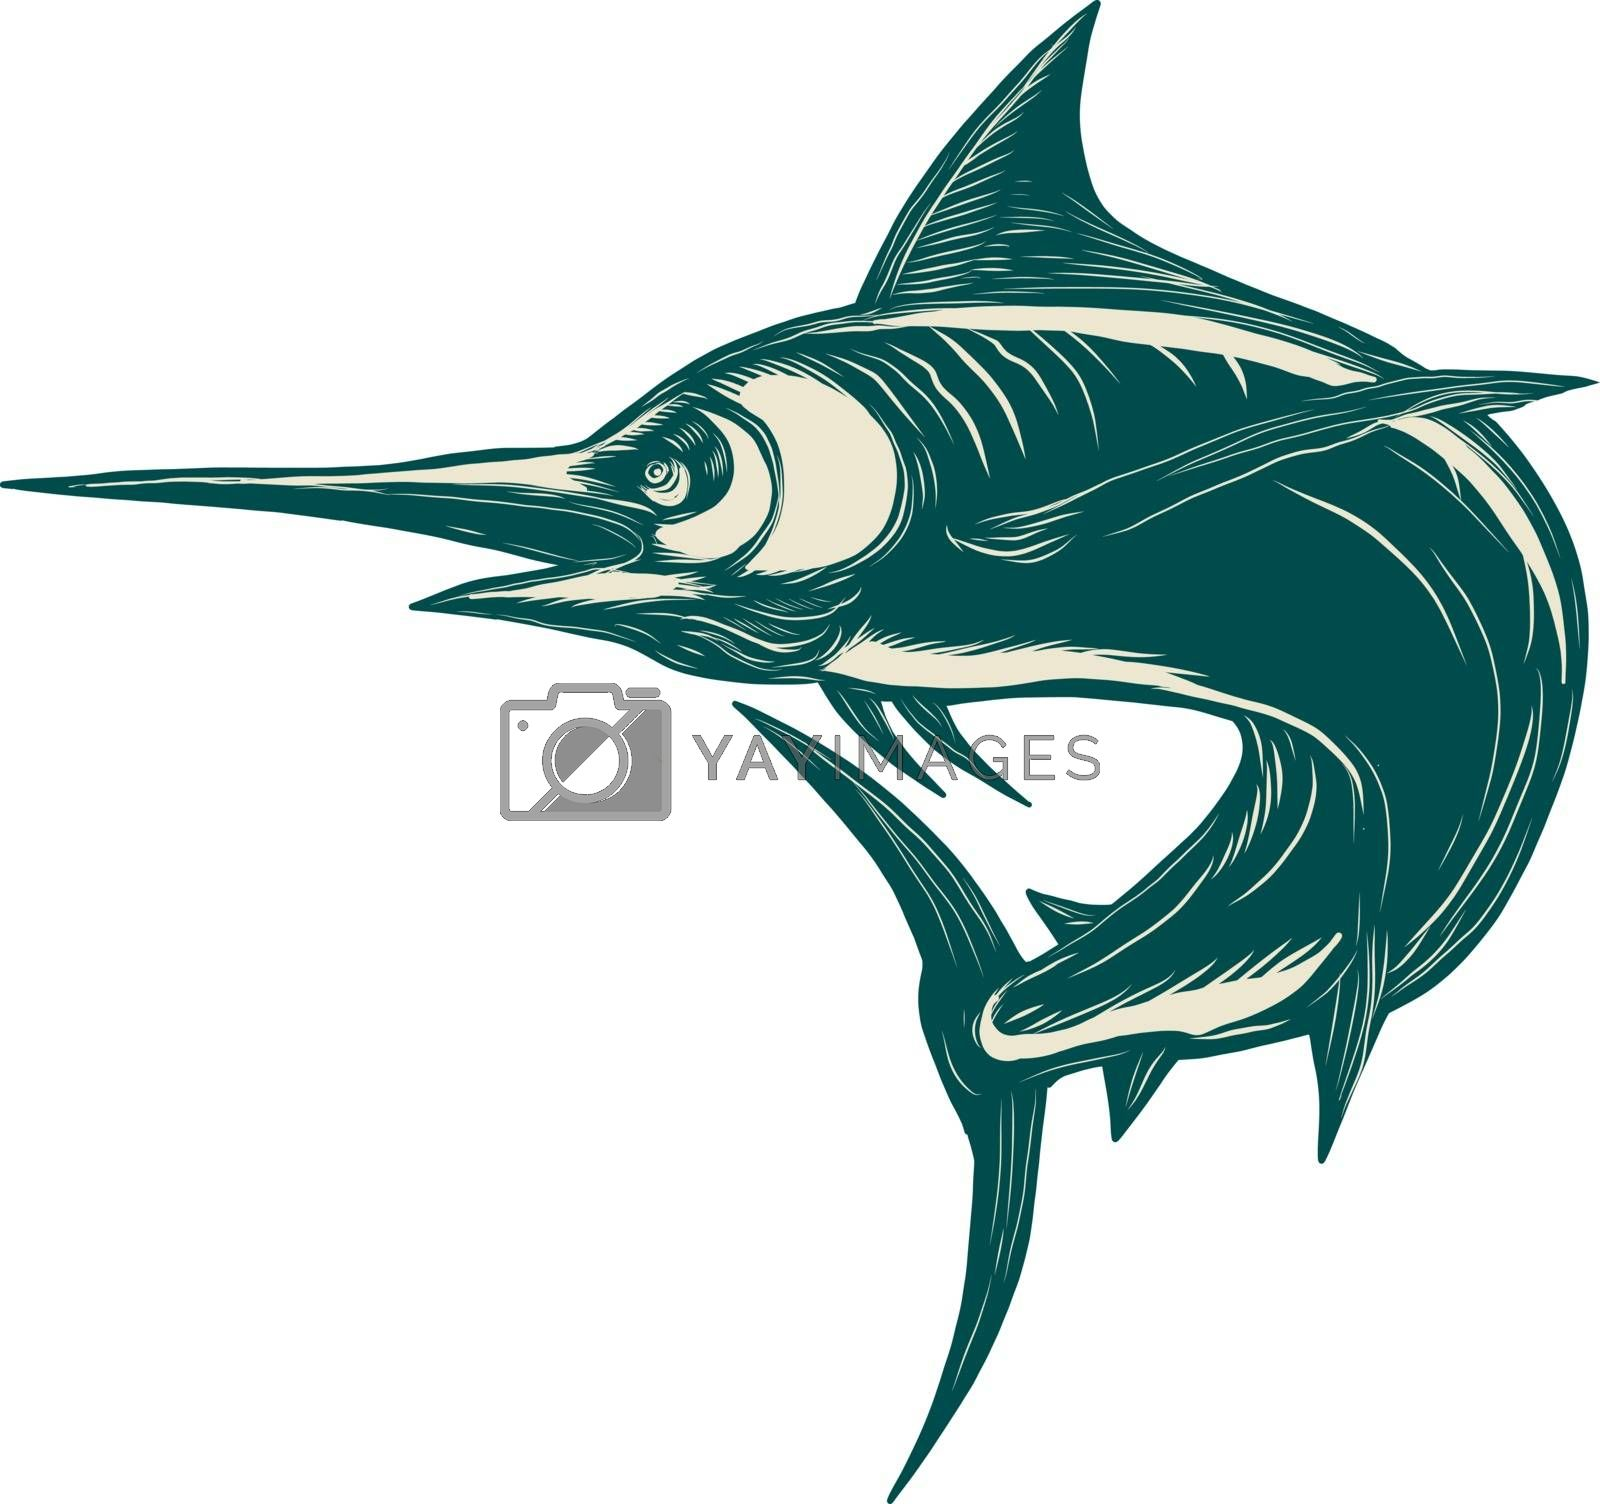 Scratchboard style illustration of a blue marlin, marlin, sailfish , bill fish or game fish jumping done on scraperboard on isolated background.